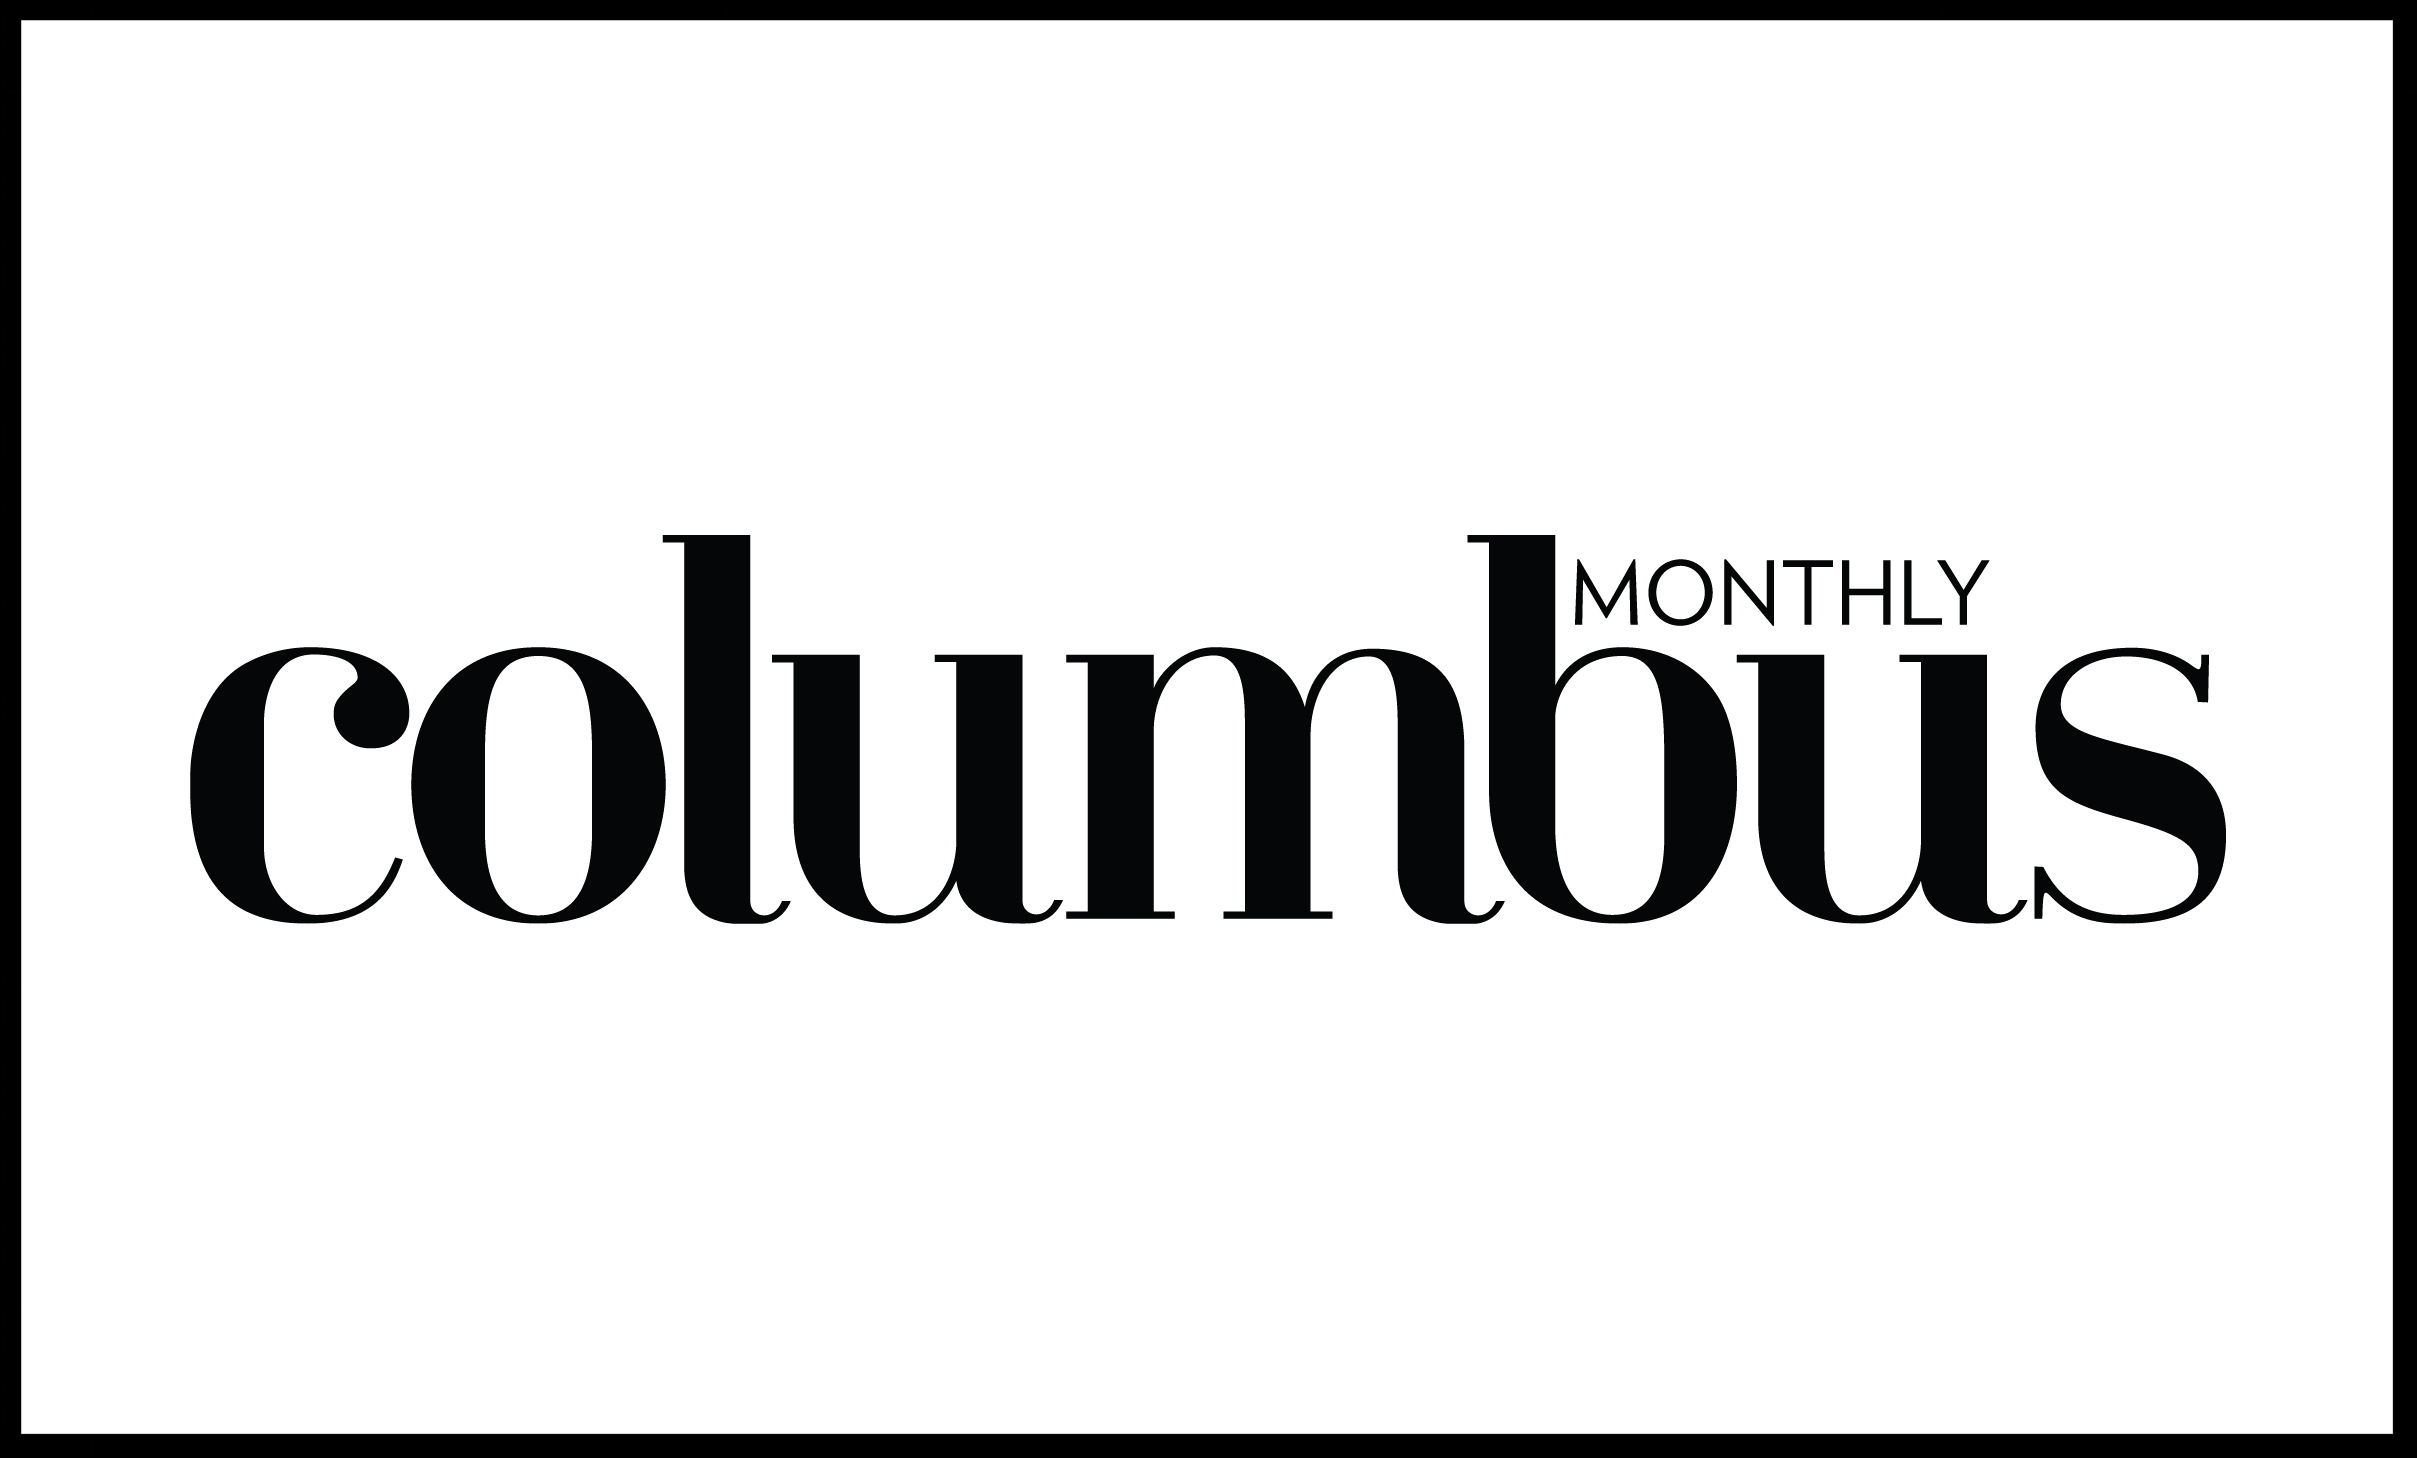 Columbus-Monthly-01.jpg